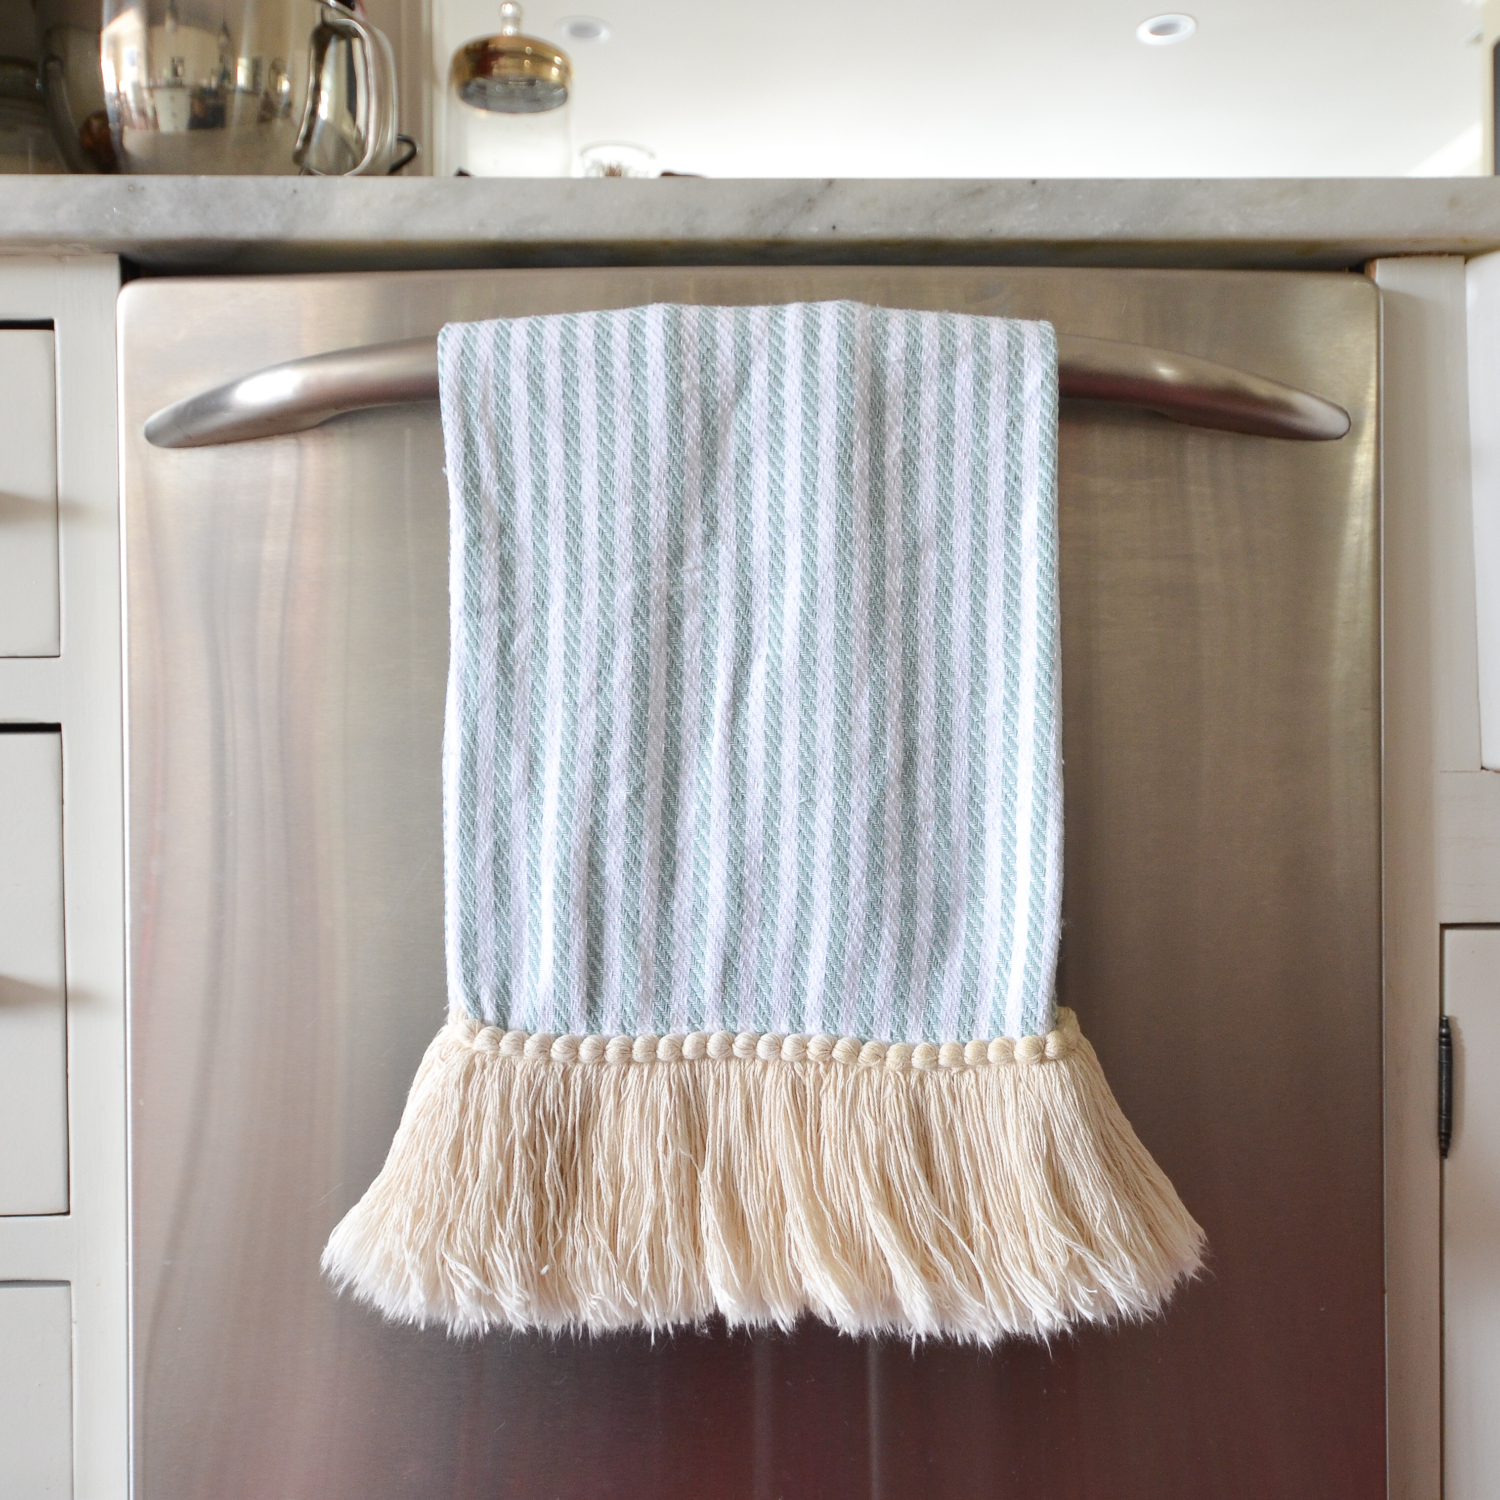 DIY fringe dishtowel